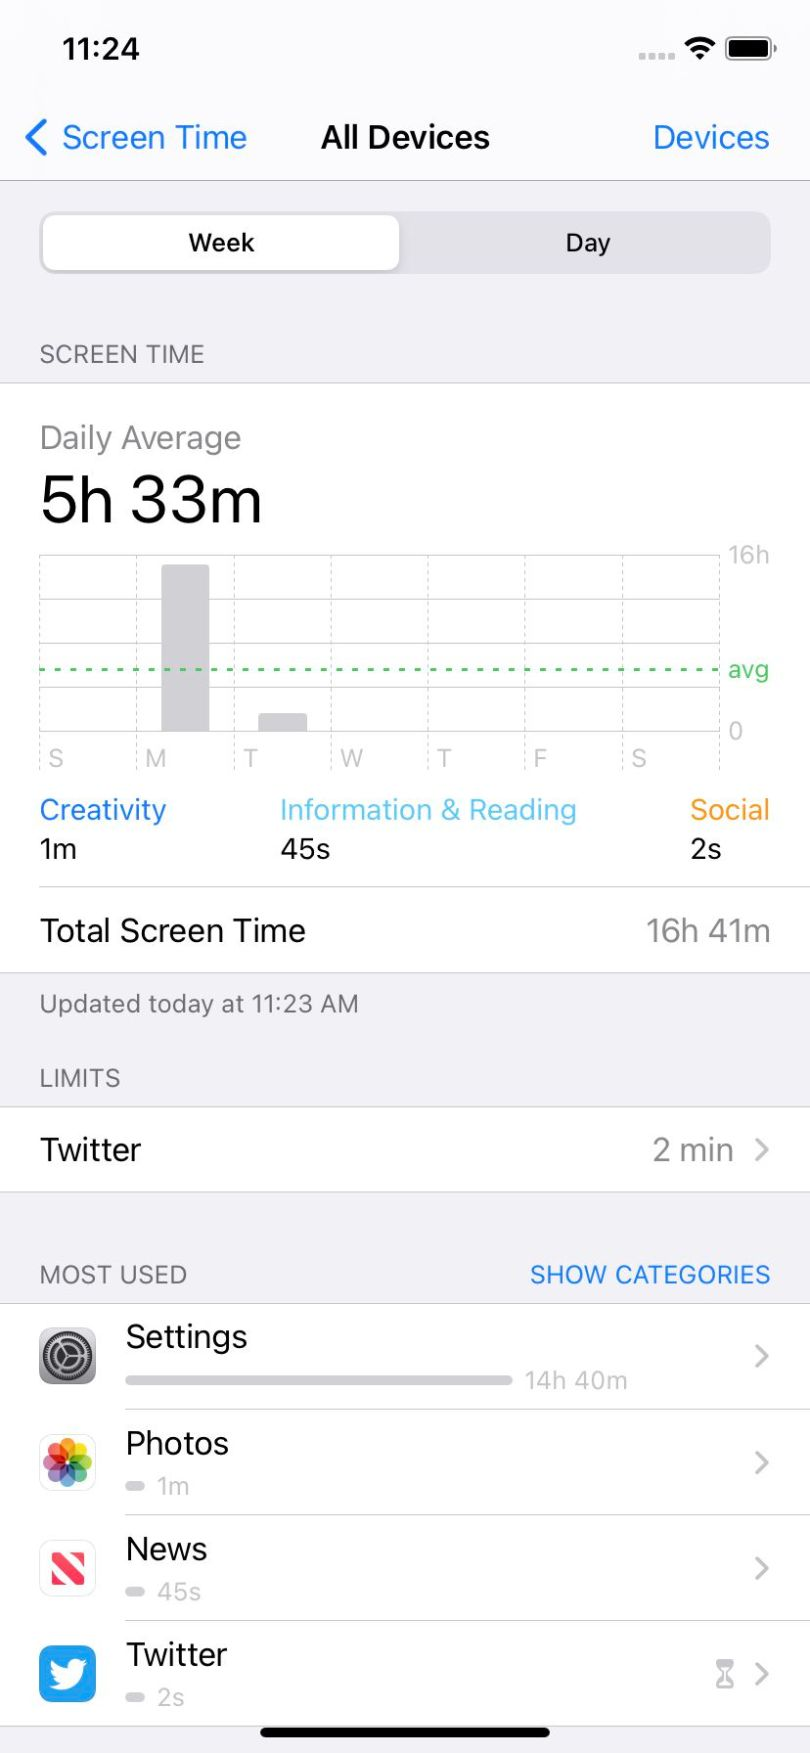 Screen Time lets you know how long you've been on your phone, and with which apps